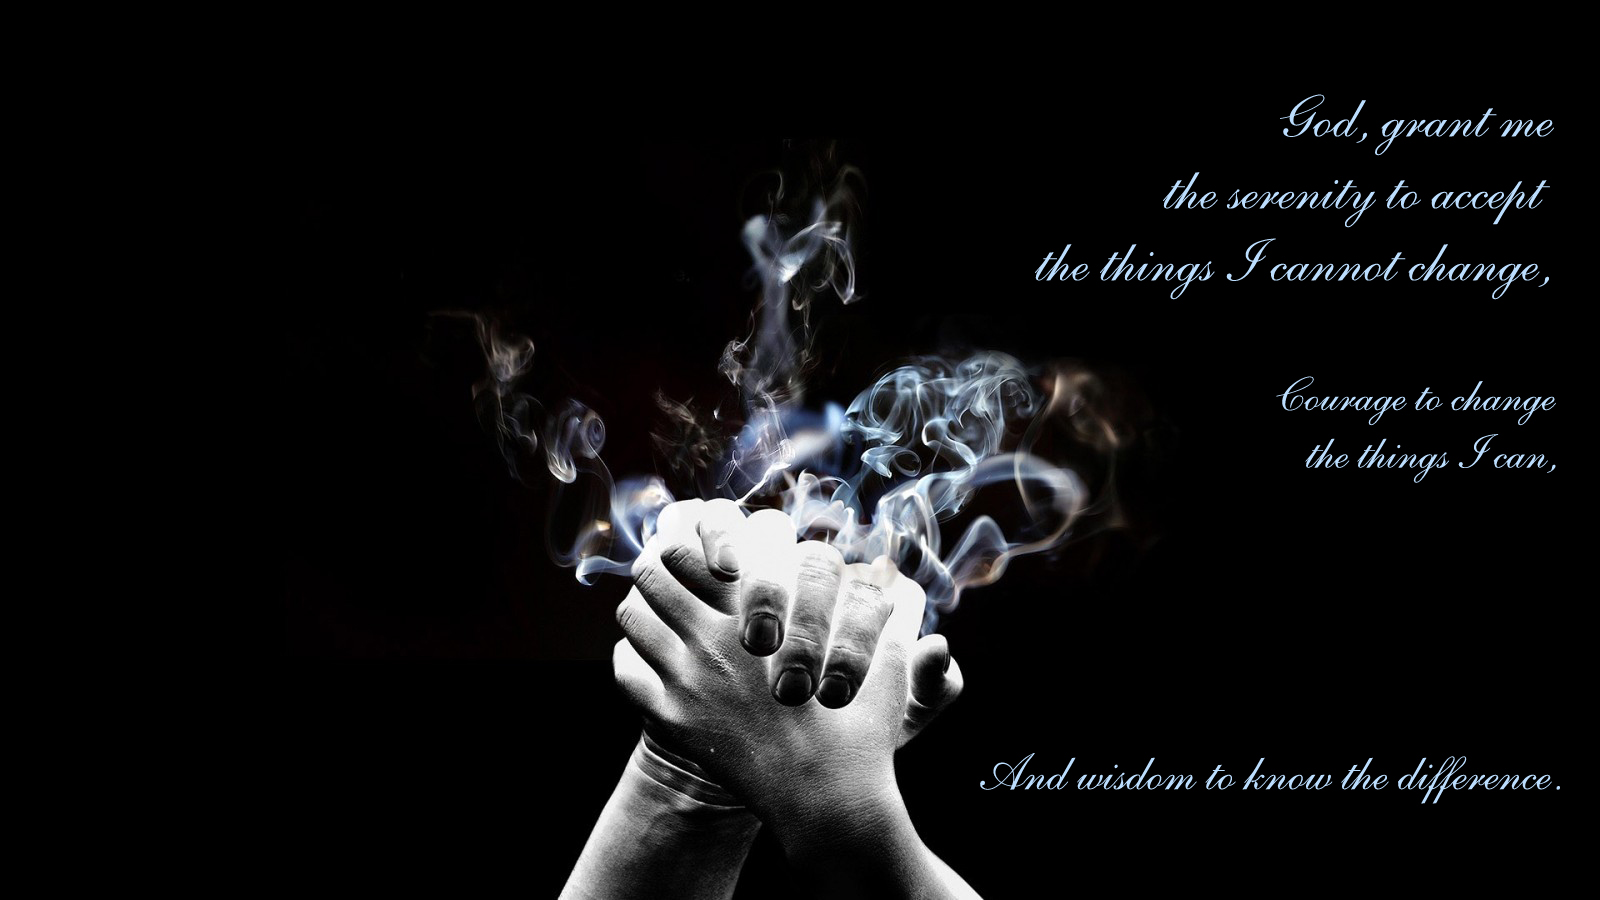 Broken Heart Quotes Wallpapers Free Download 5 Prayer Hd Wallpapers Background Images Wallpaper Abyss